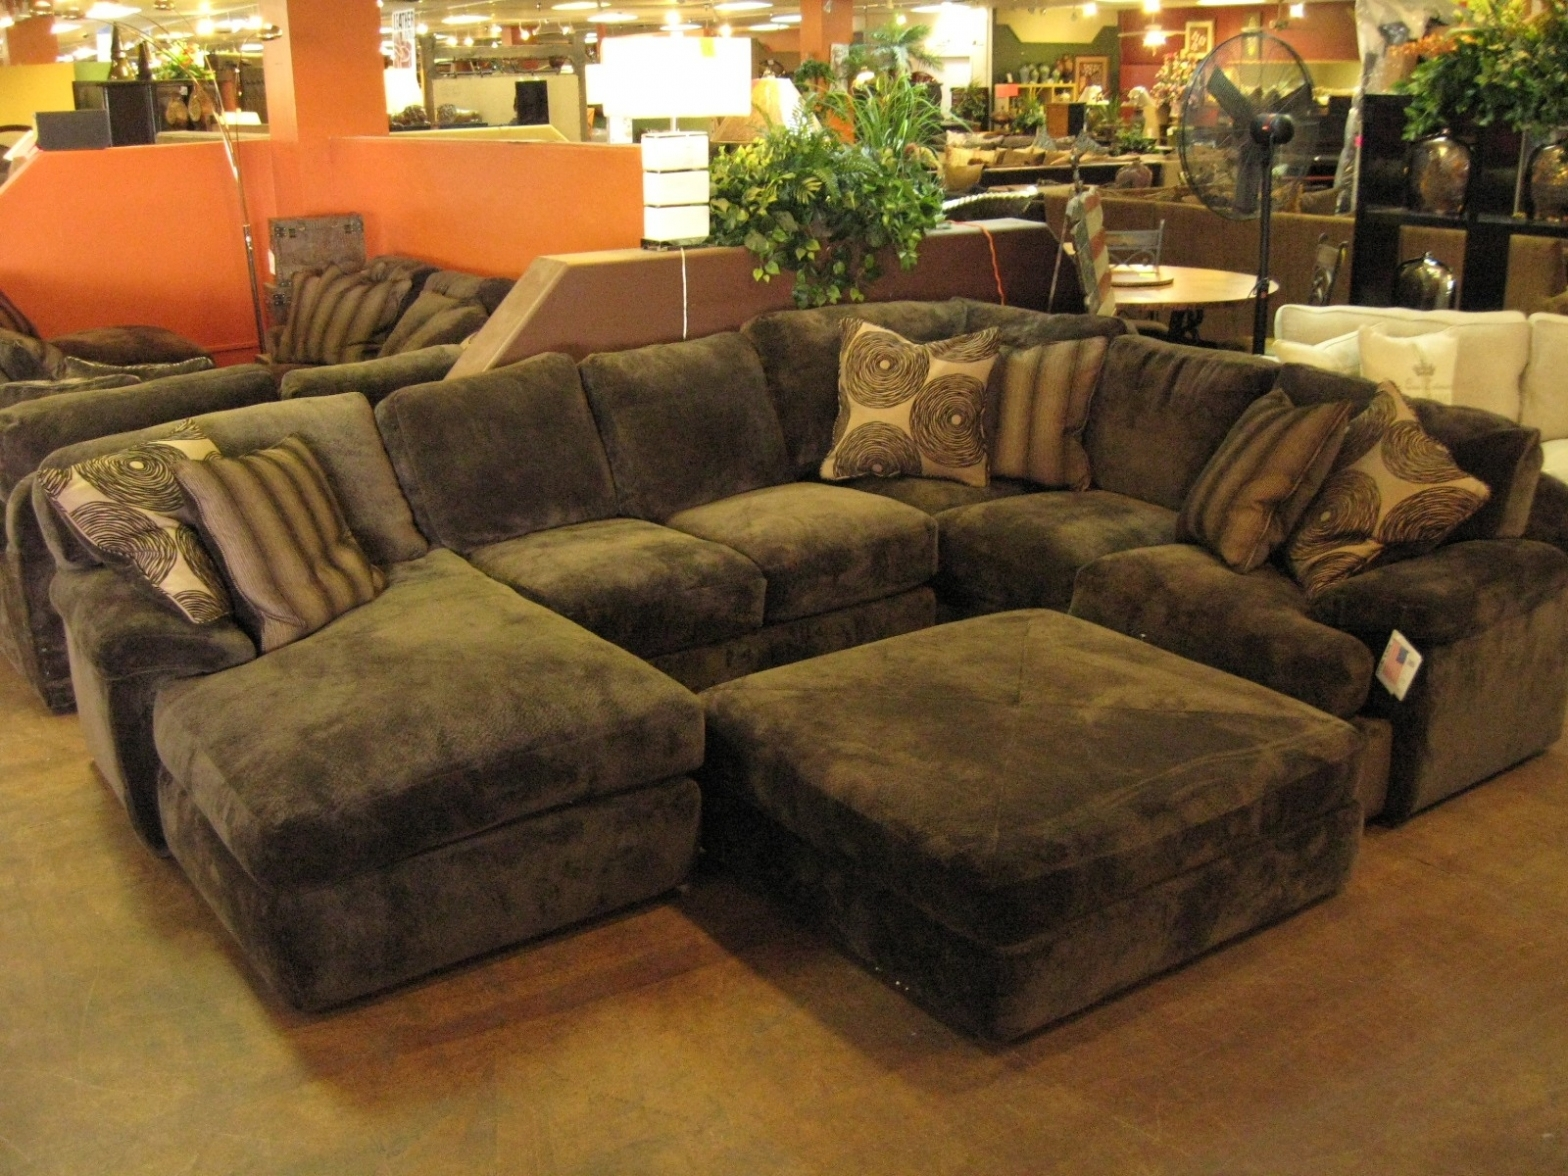 Furniture: Awesome Amazon Sectional Sofas 77 On The Brick Sectional For Sectional Sofas At Amazon (View 9 of 15)